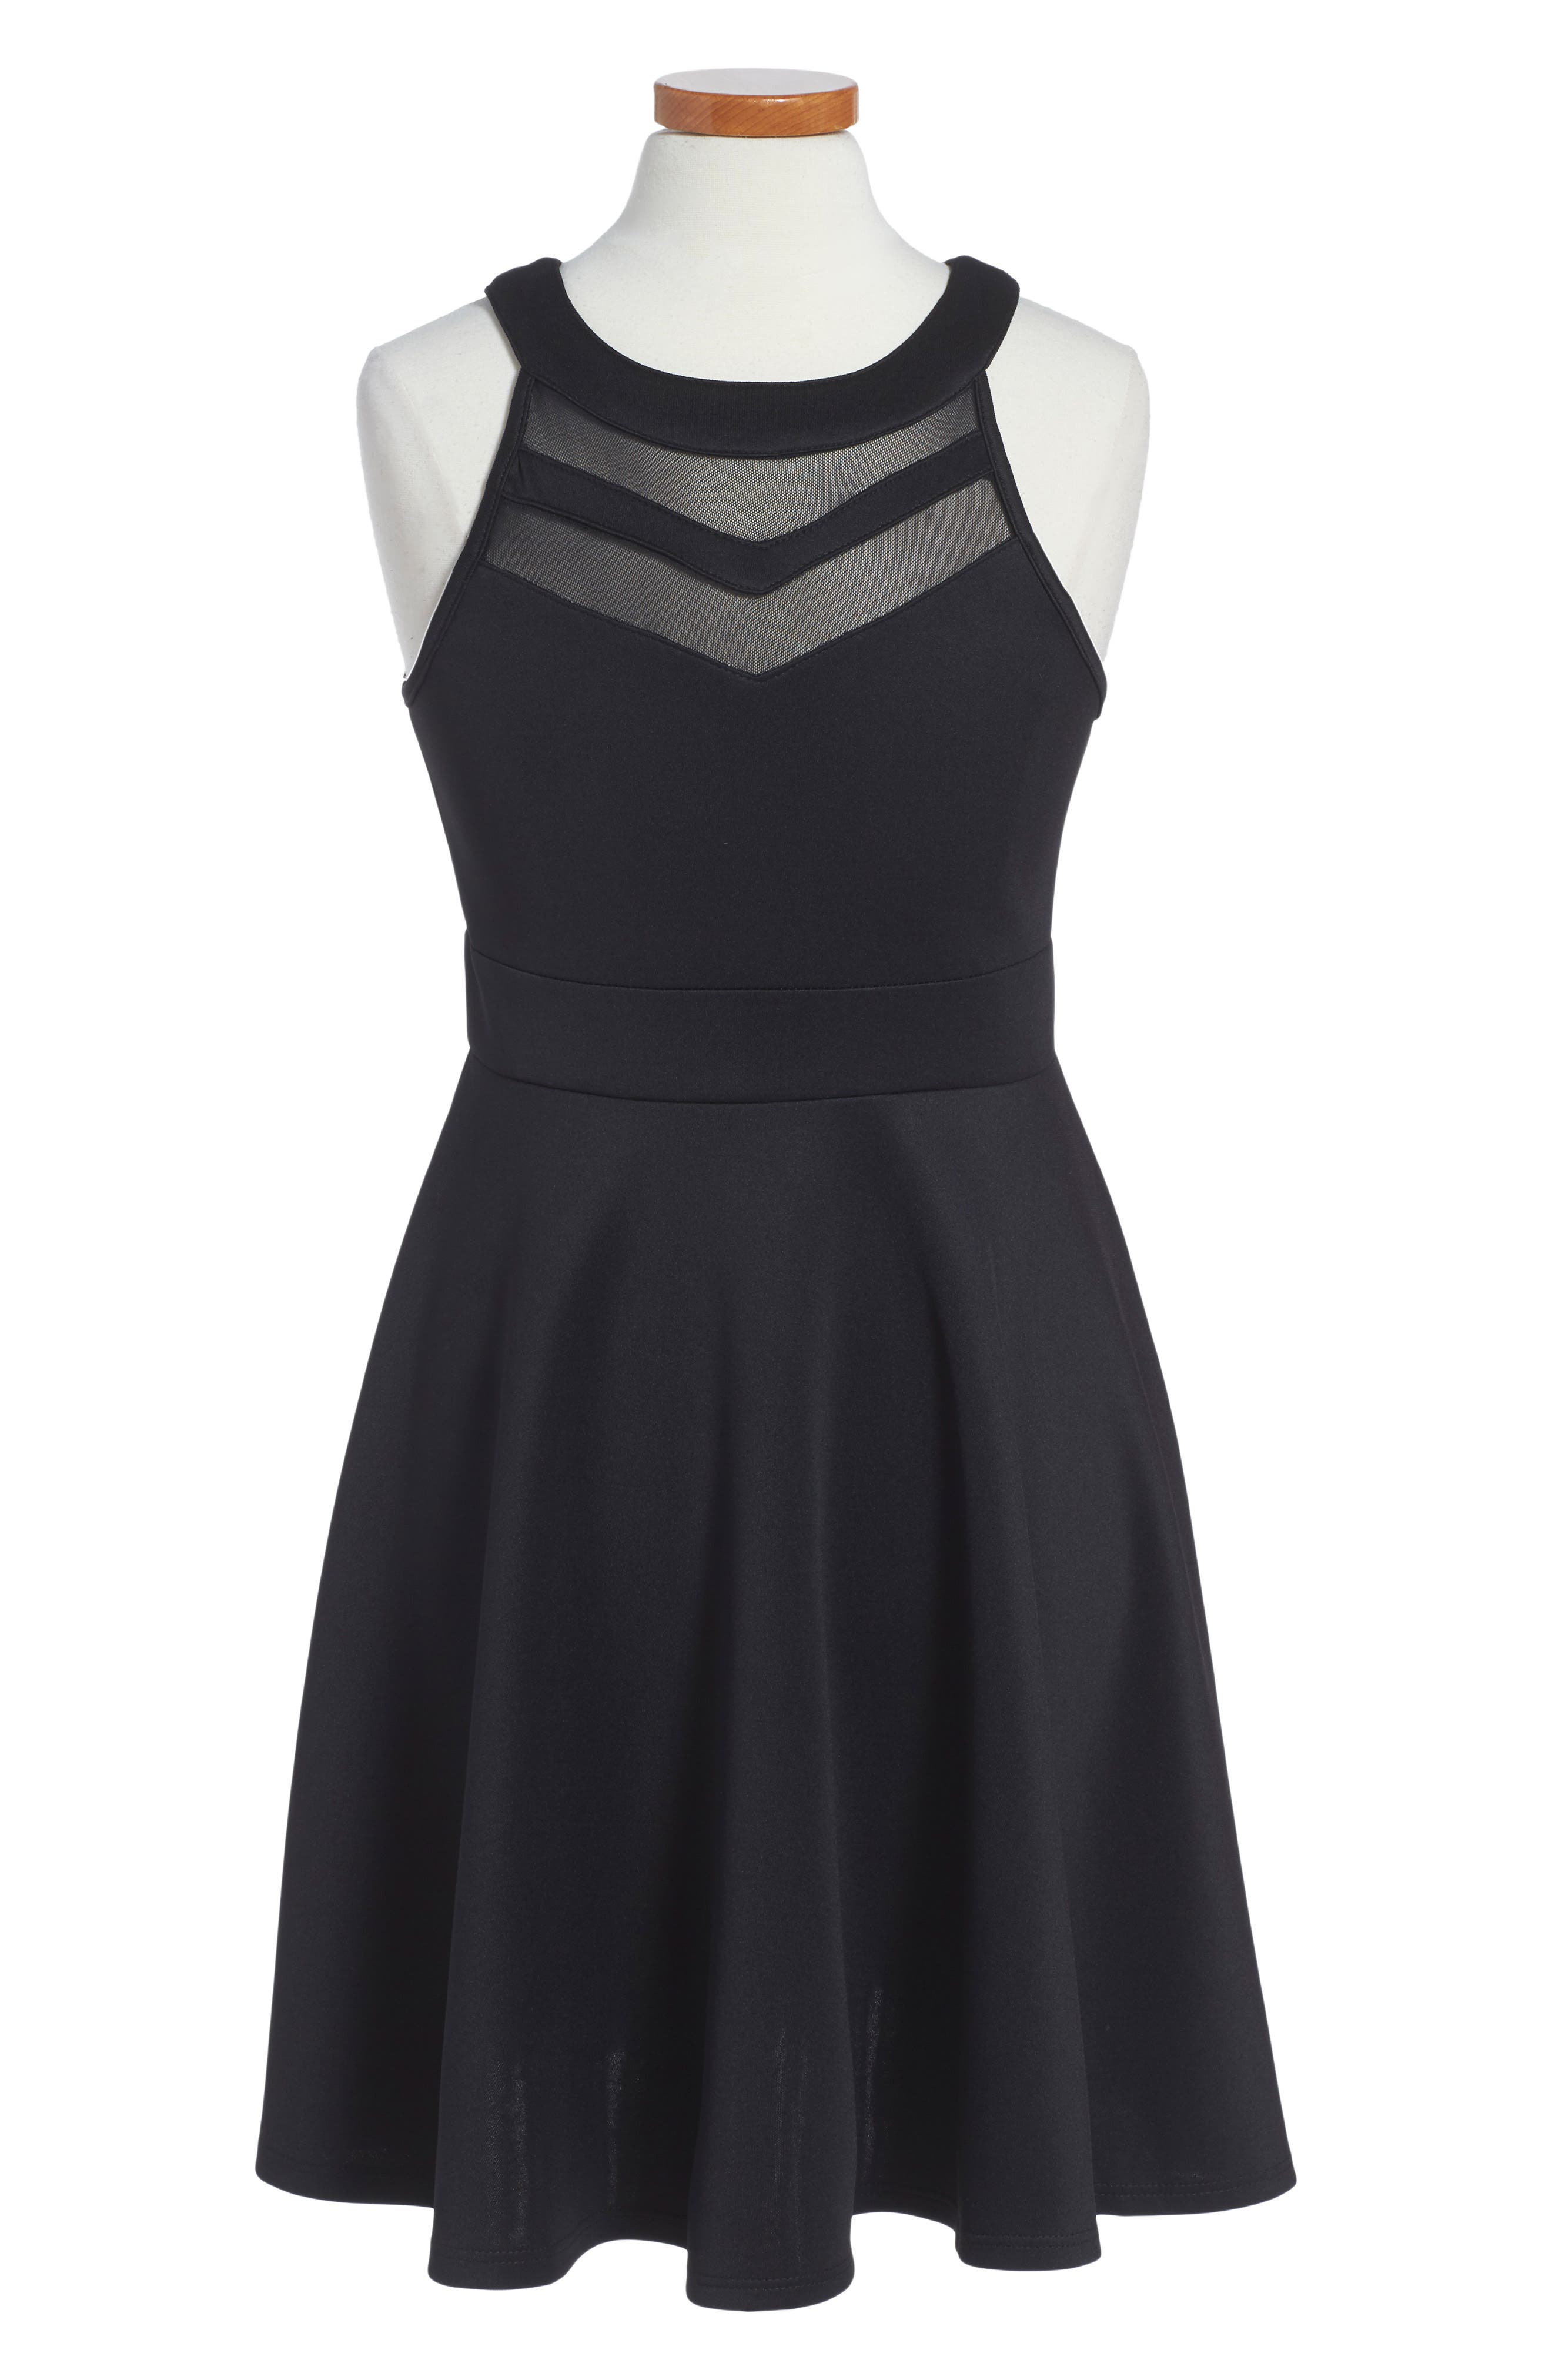 LOVE, NICKIE LEW Mesh Inset Party Dress